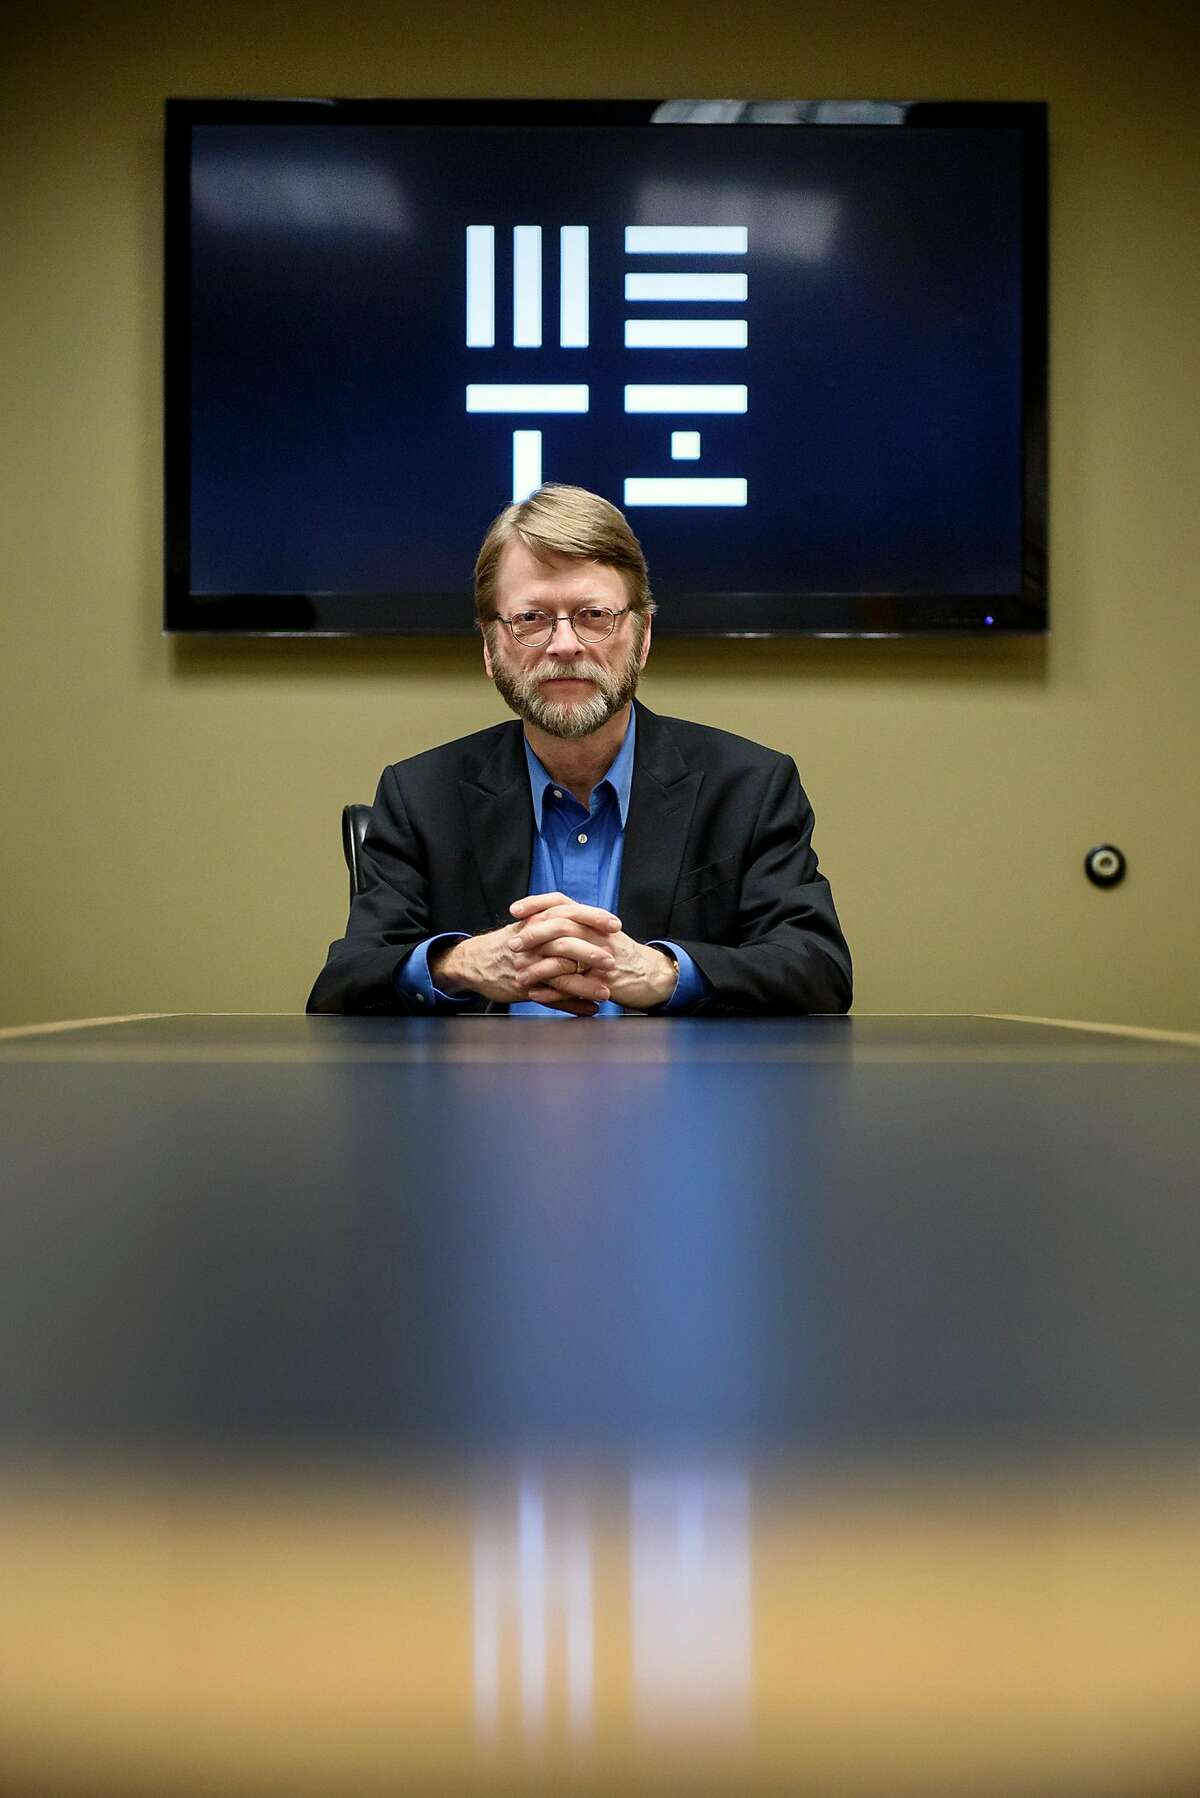 METI(Messaging Extra-Terrestrial Intelligence) President Douglas Vakoch, Ph.D., sits for a portrait in front of the METI logo at their offices in San Francisco, Calif., on Thursday, February 7, 2019.